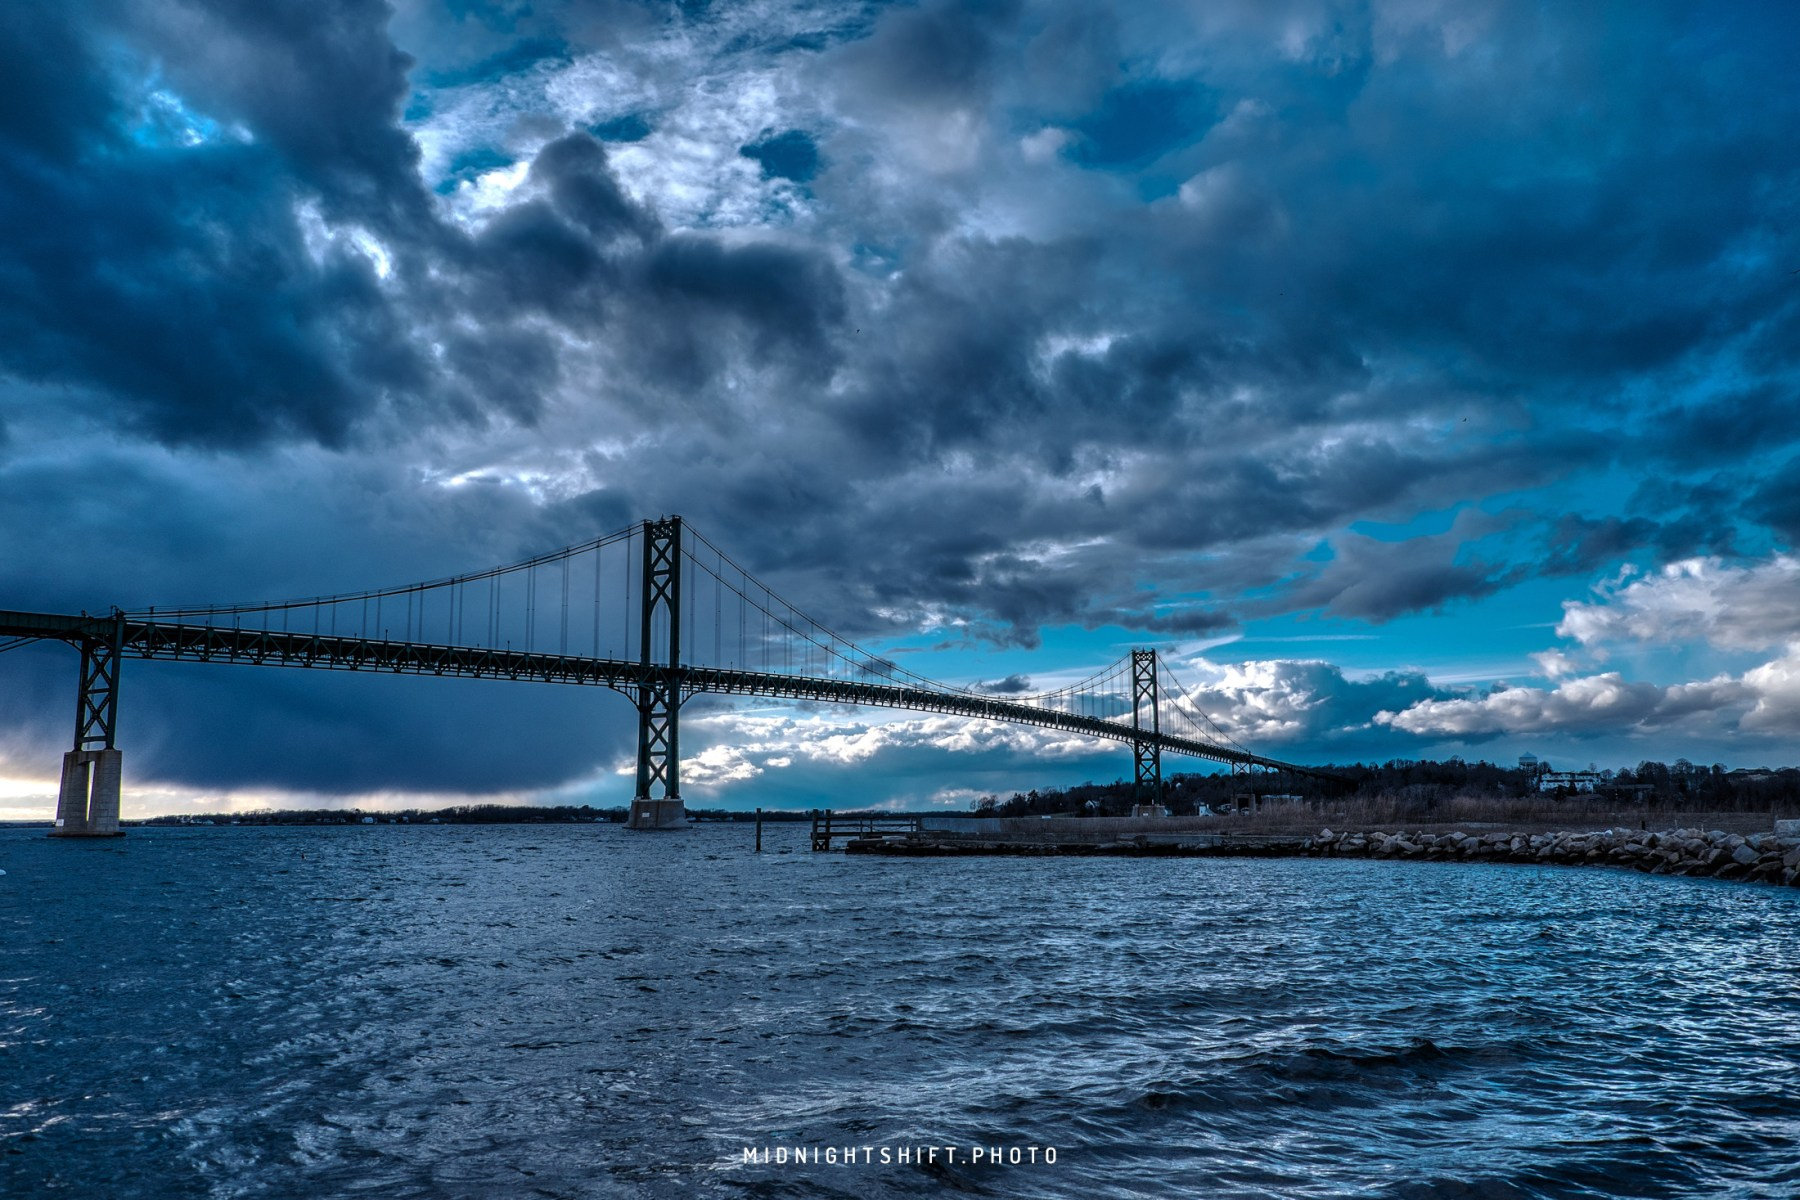 A storm breaks over the Mt Hope Bridge inbetween bristol and portsmouth Rhode Island